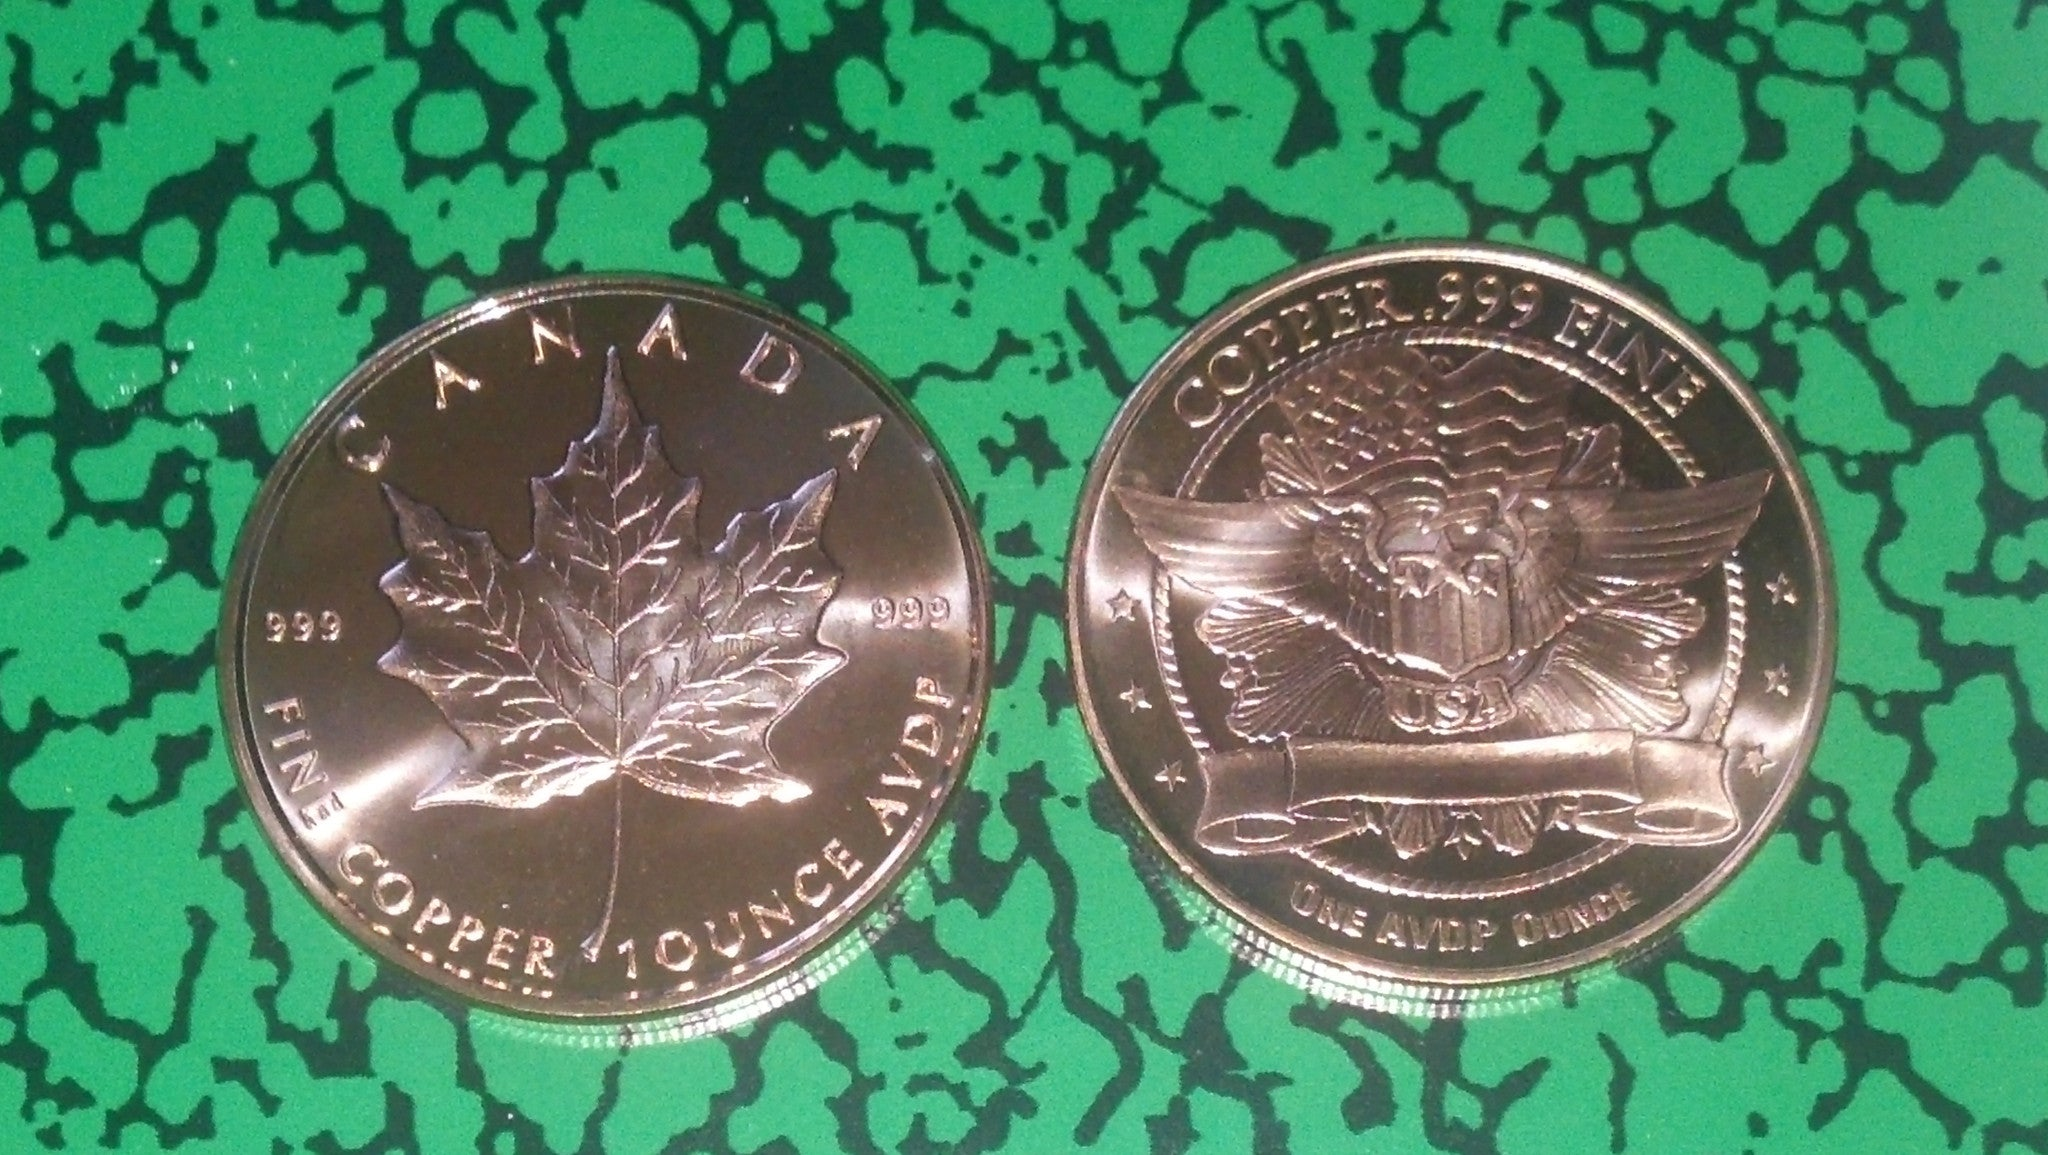 Copper Round Coin Canada   MAPLE LEAF    1 oz